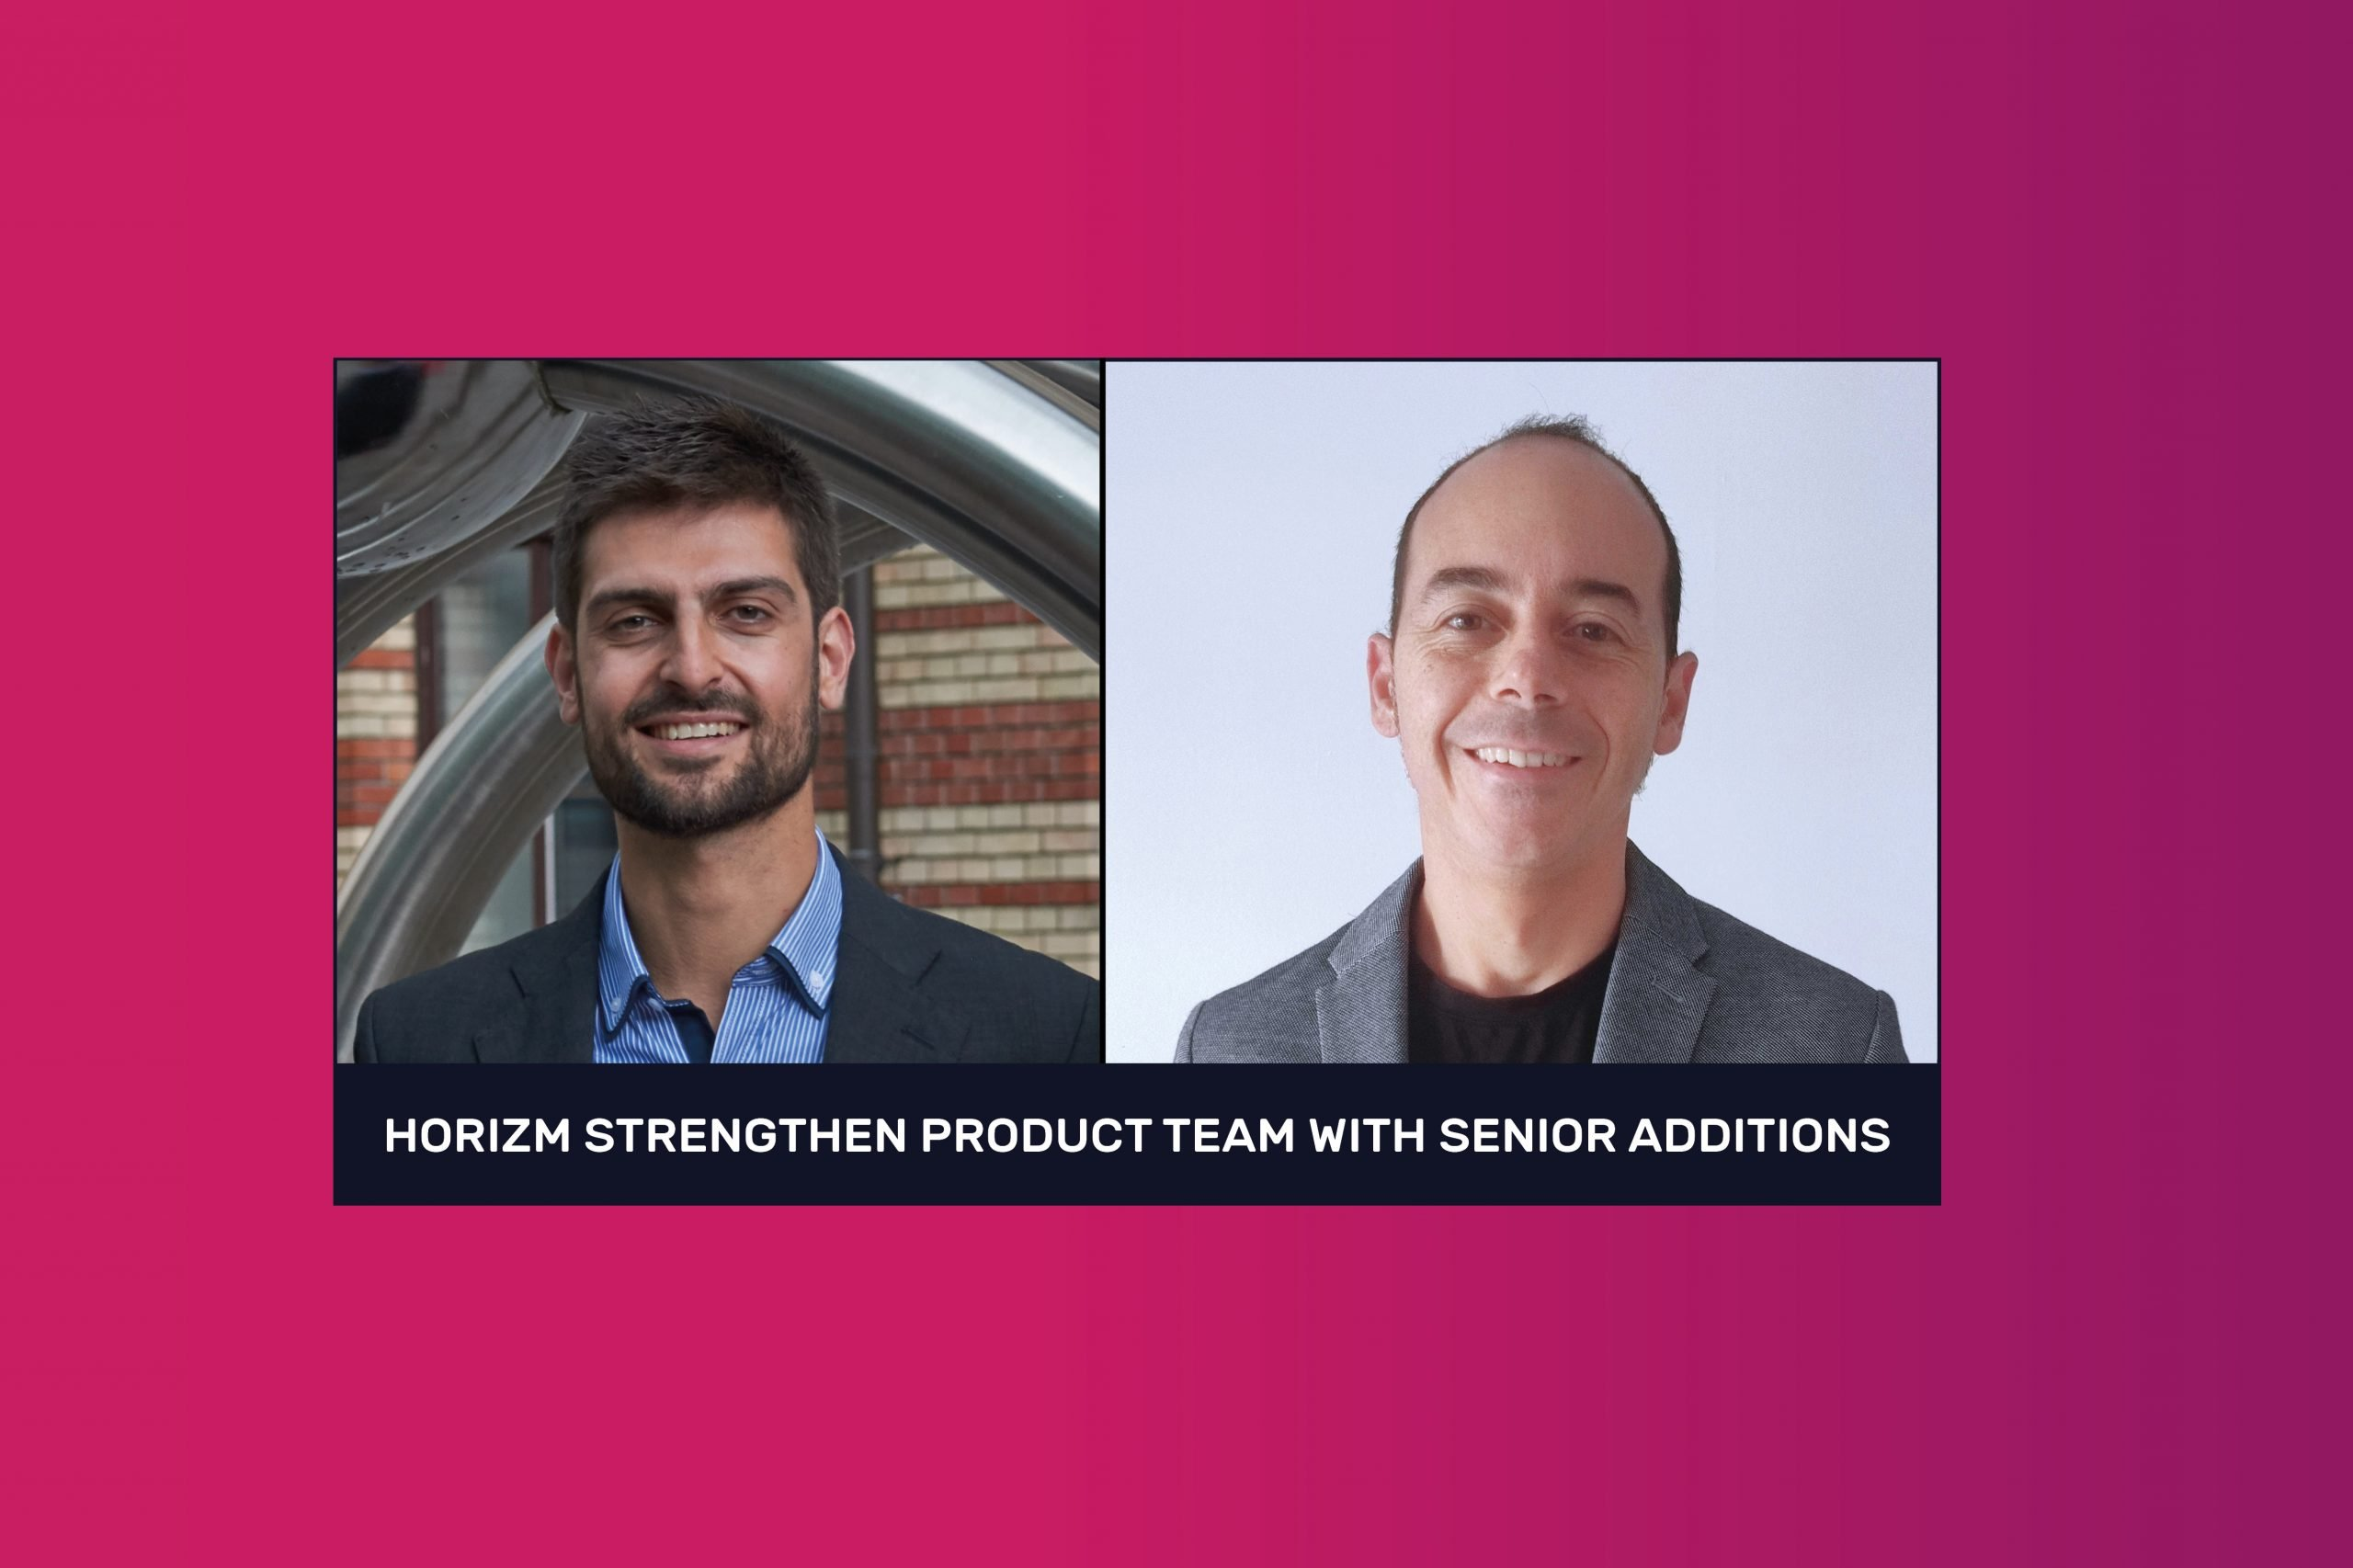 Horizm strengthen product team with senior additions from the second-hand marketplace and social gaming sectors